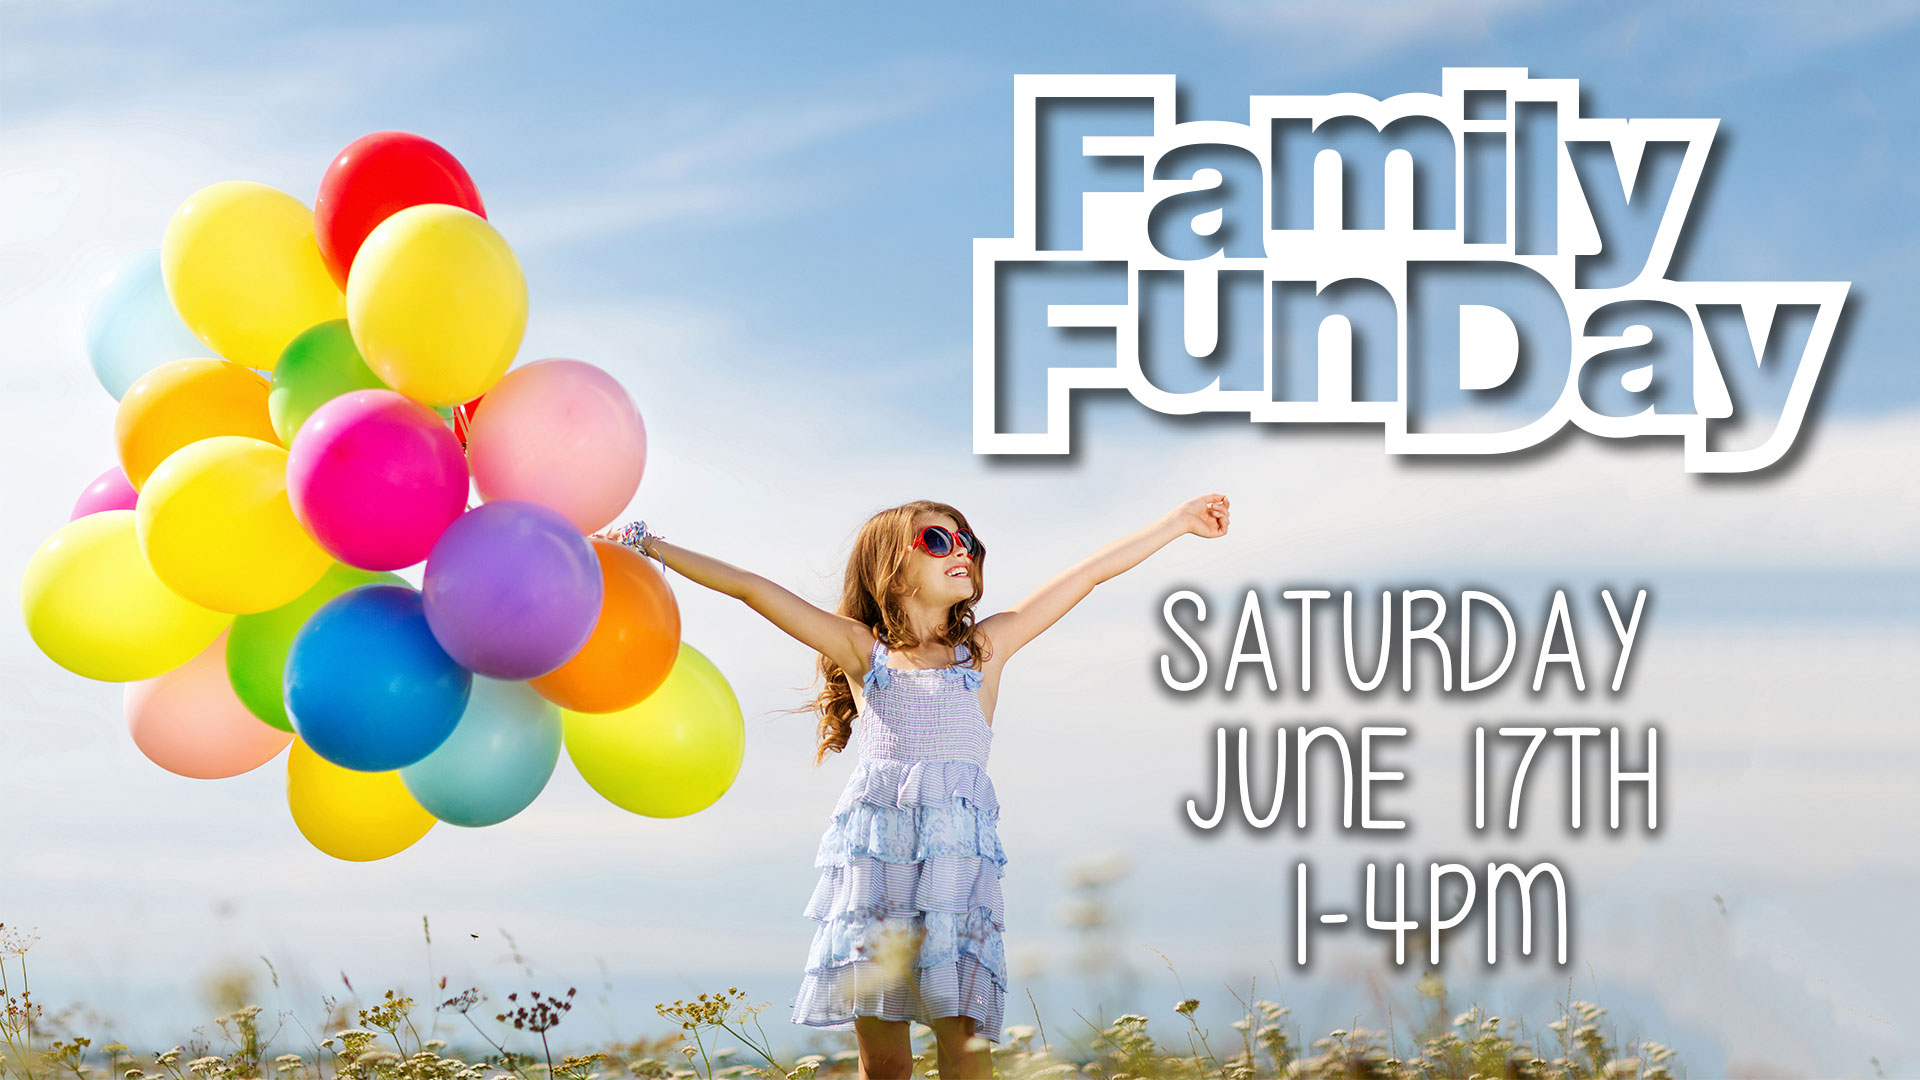 Family Fun Day 2017